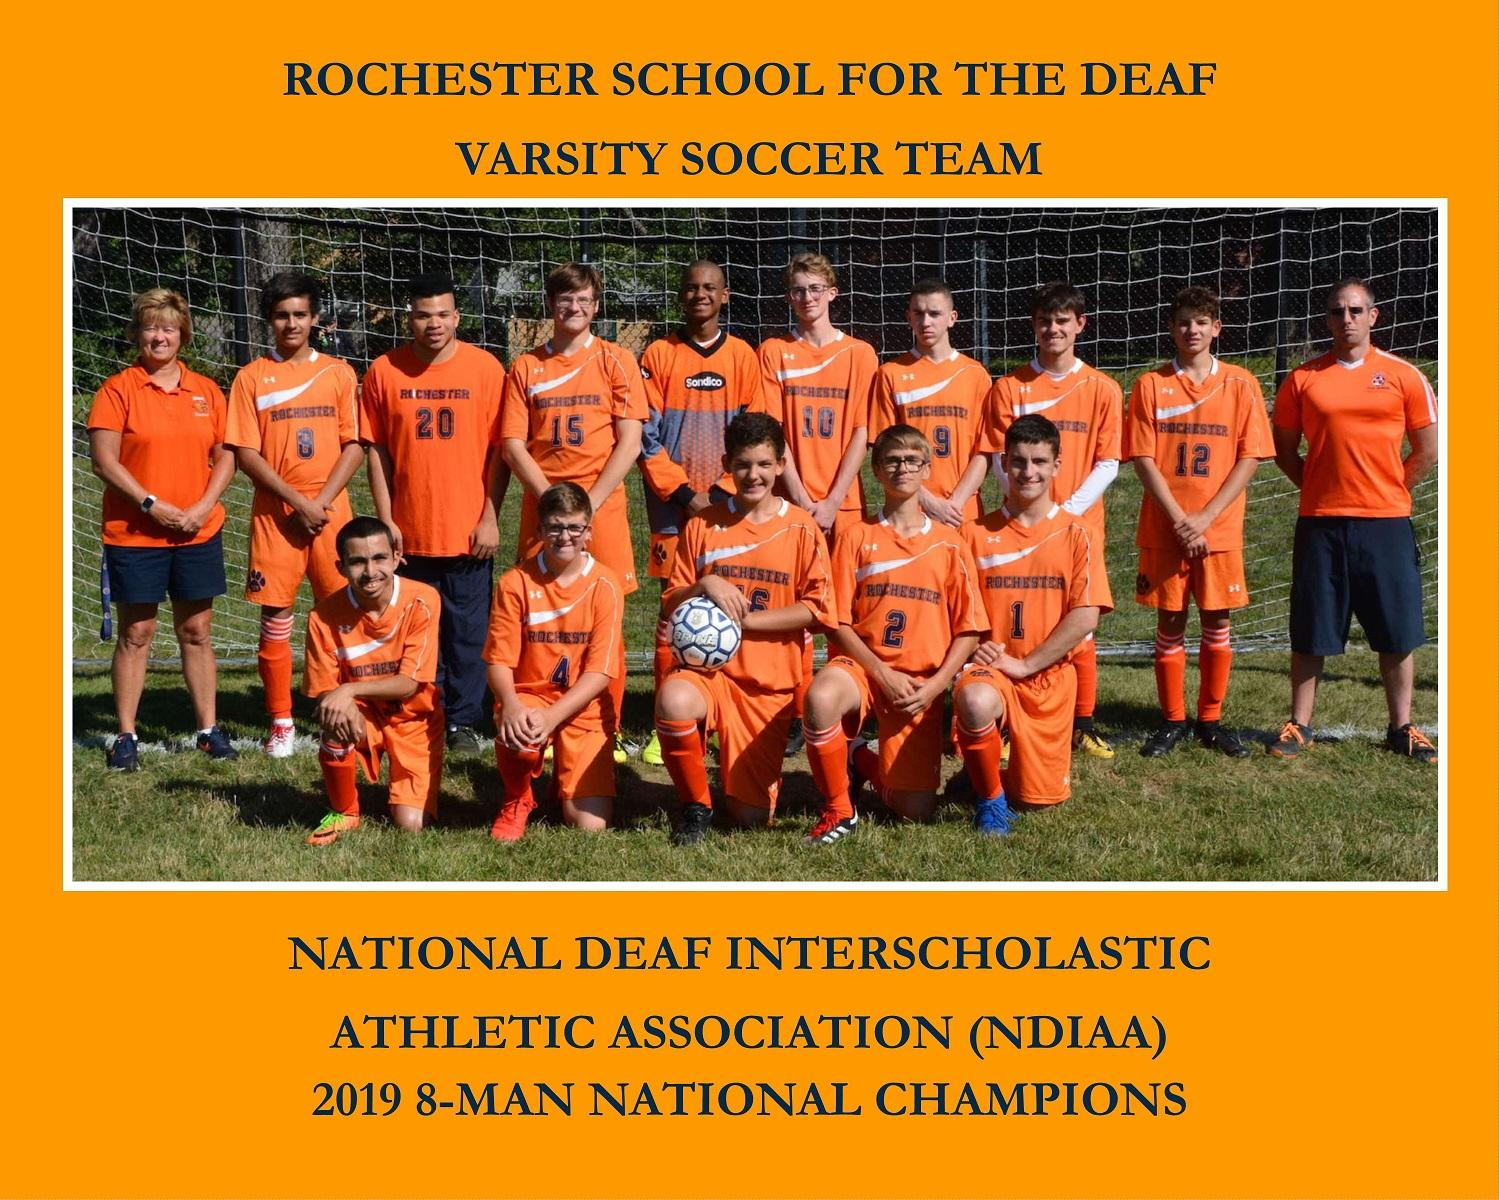 RSD NDIAA 2019 Division II Soccer Team of-the-Year